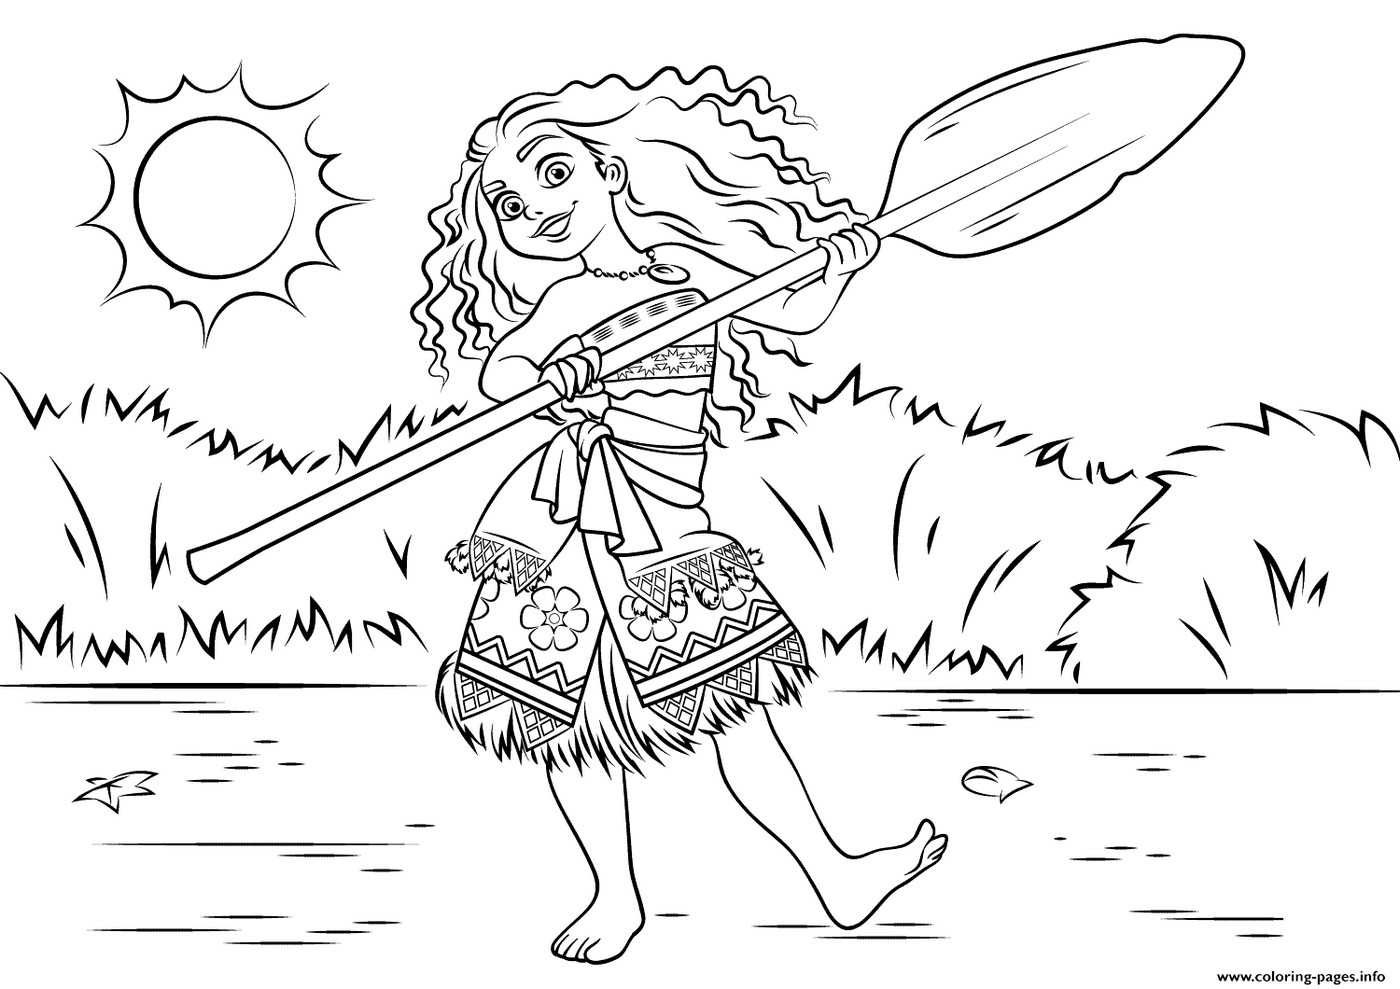 Moana-Picture-coloring-sheets